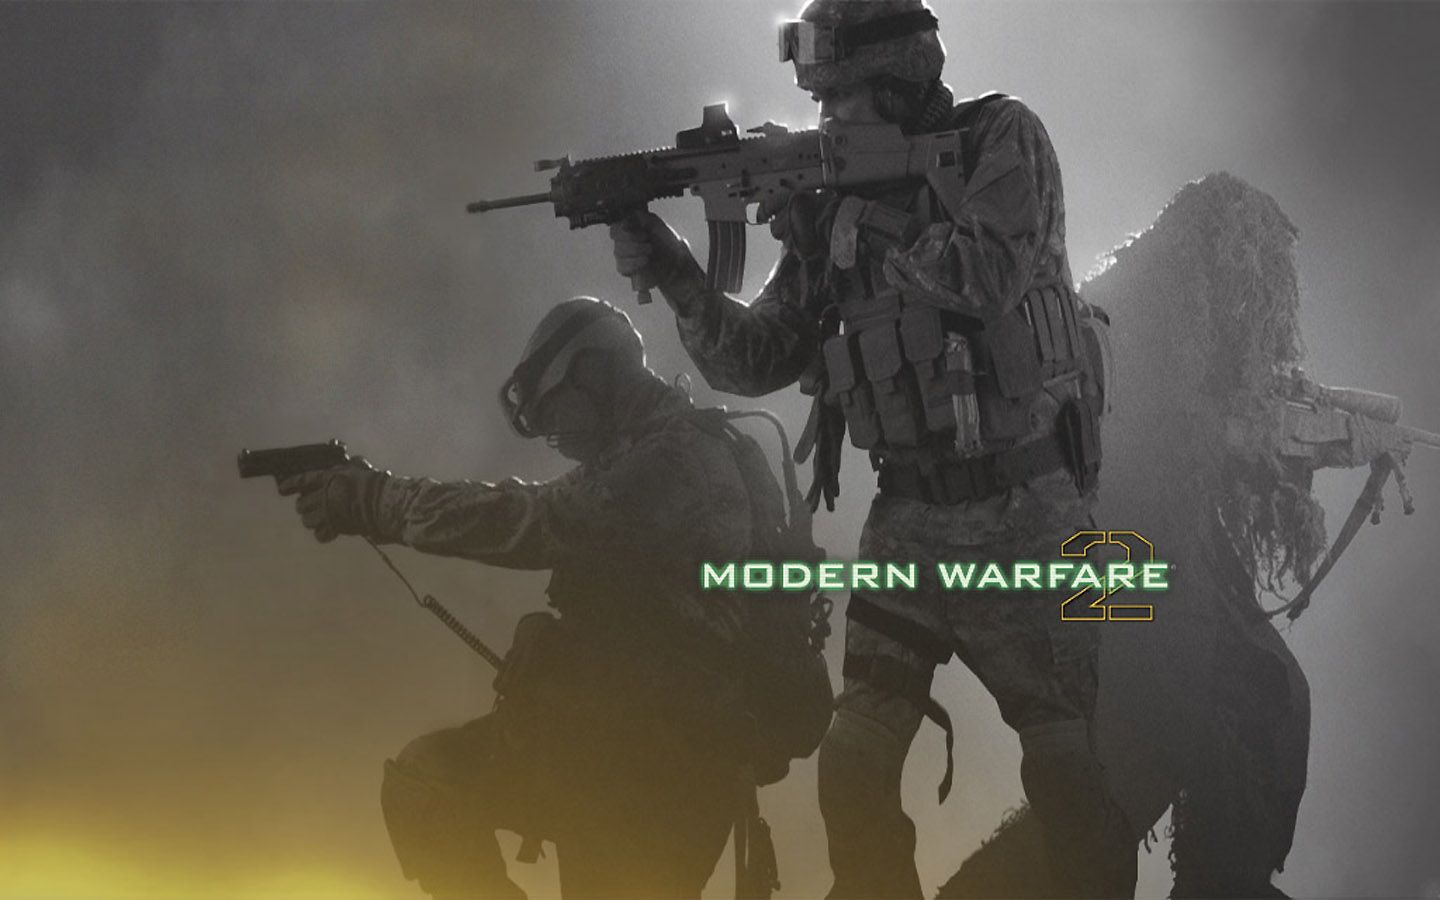 Modern Warfare Wallpapers HD Wallpaper